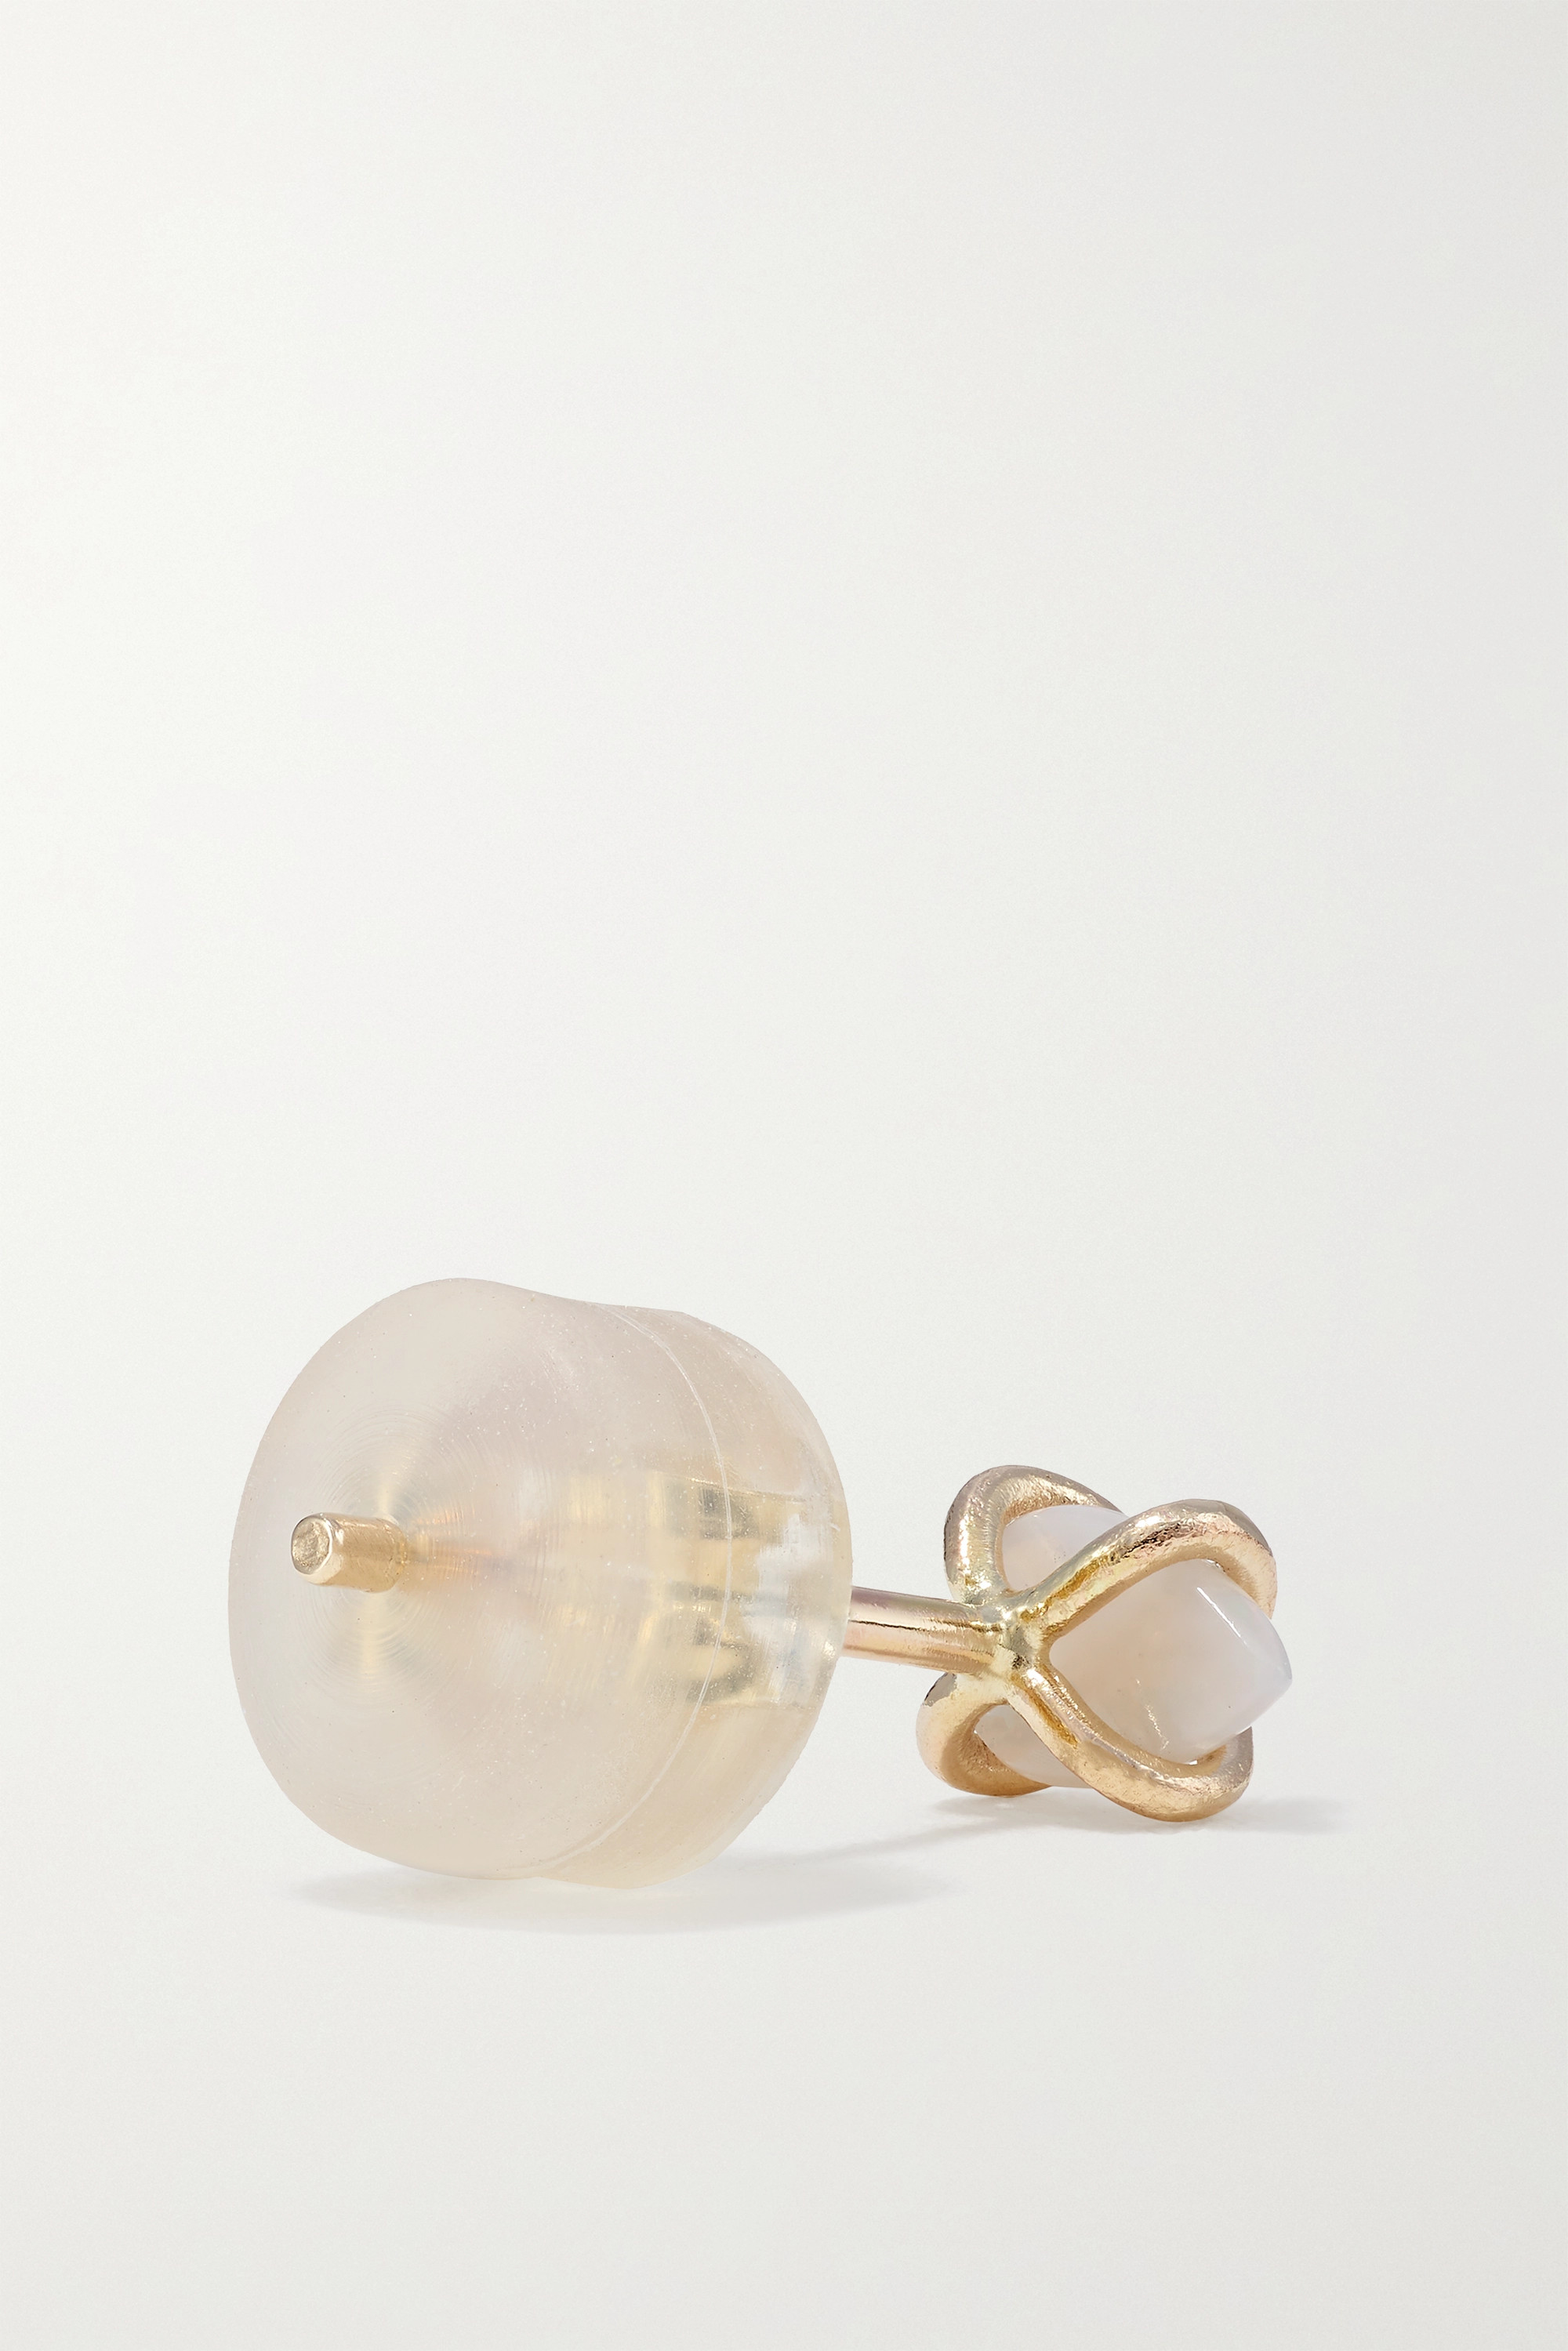 MELISSA JOY MANNING 14-karat recycled gold opal earrings